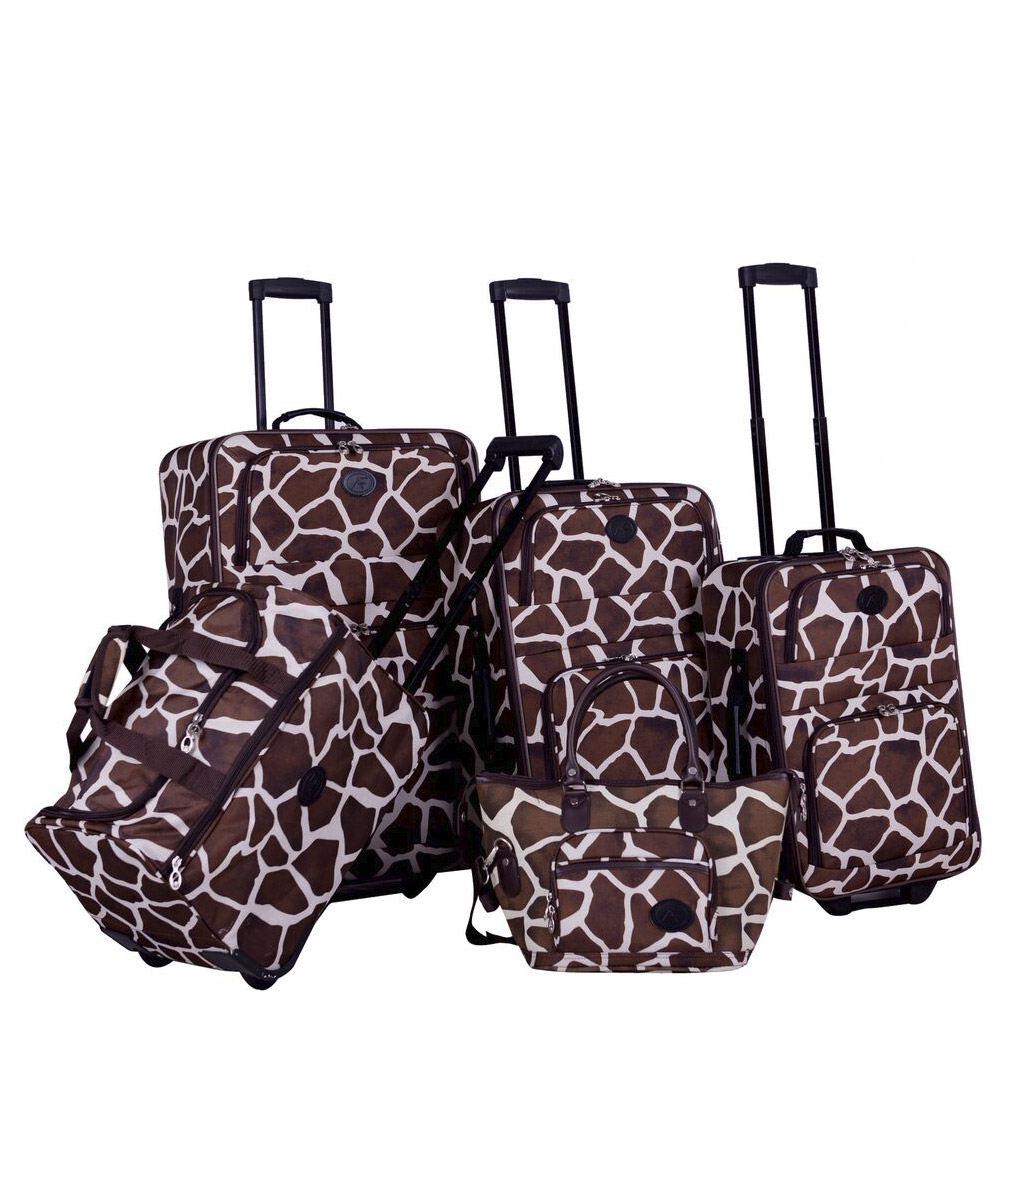 American Flyer Animal Print Giraffe Brown 5 Piece Luggage Set